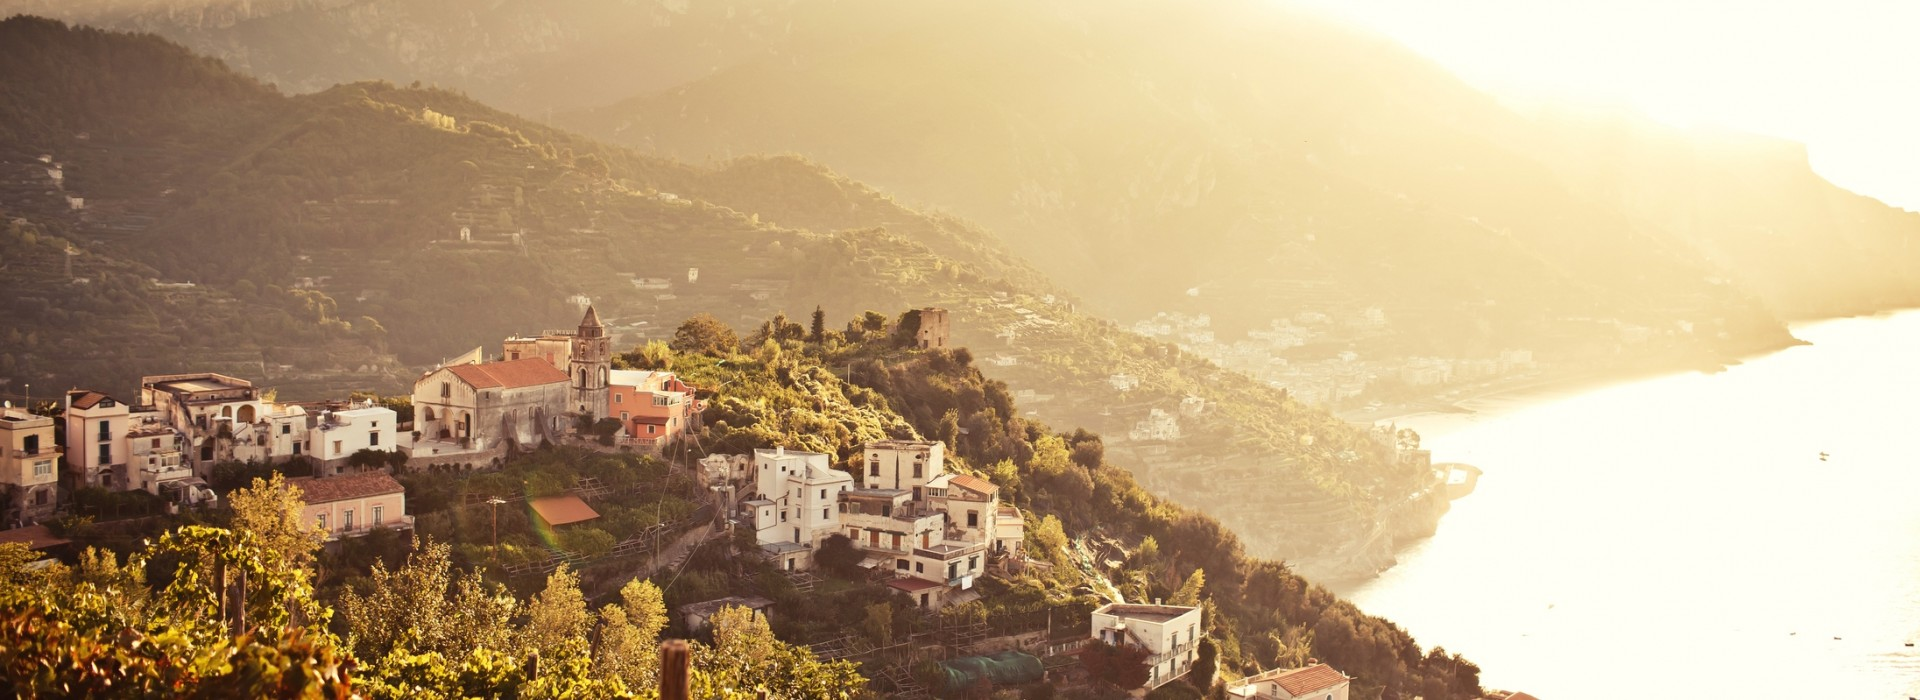 Ravello, a refined, polished town almost entirely dedicated to tourism